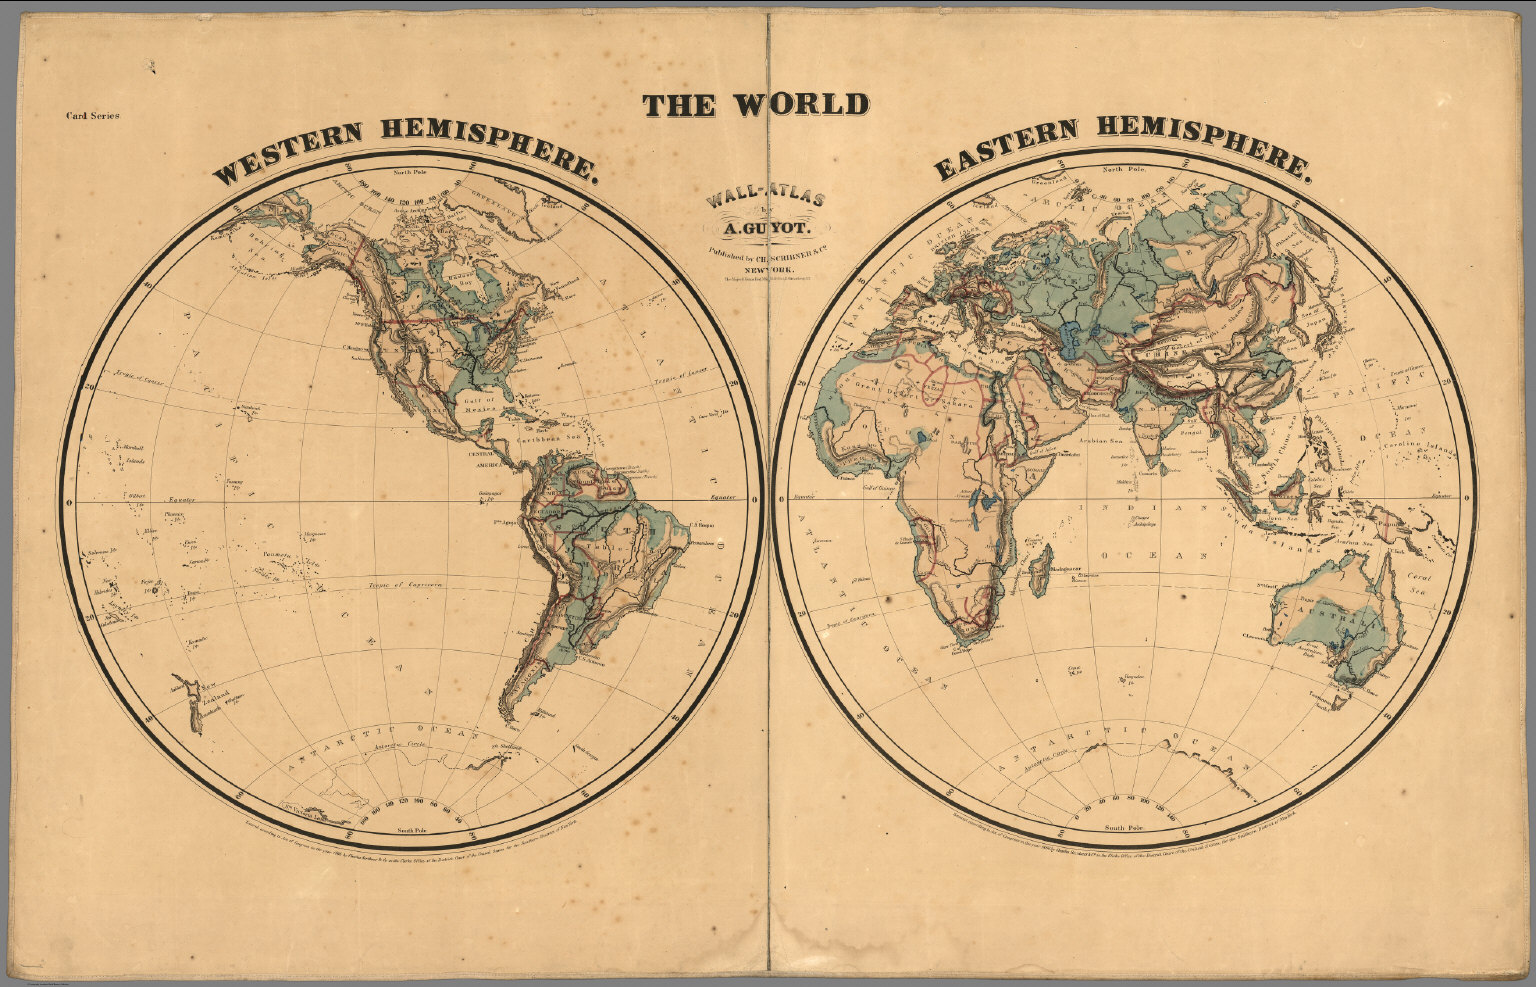 The world western hemisphere eastern hemisphere david rumsey the world western hemisphere eastern hemisphere david rumsey historical map collection gumiabroncs